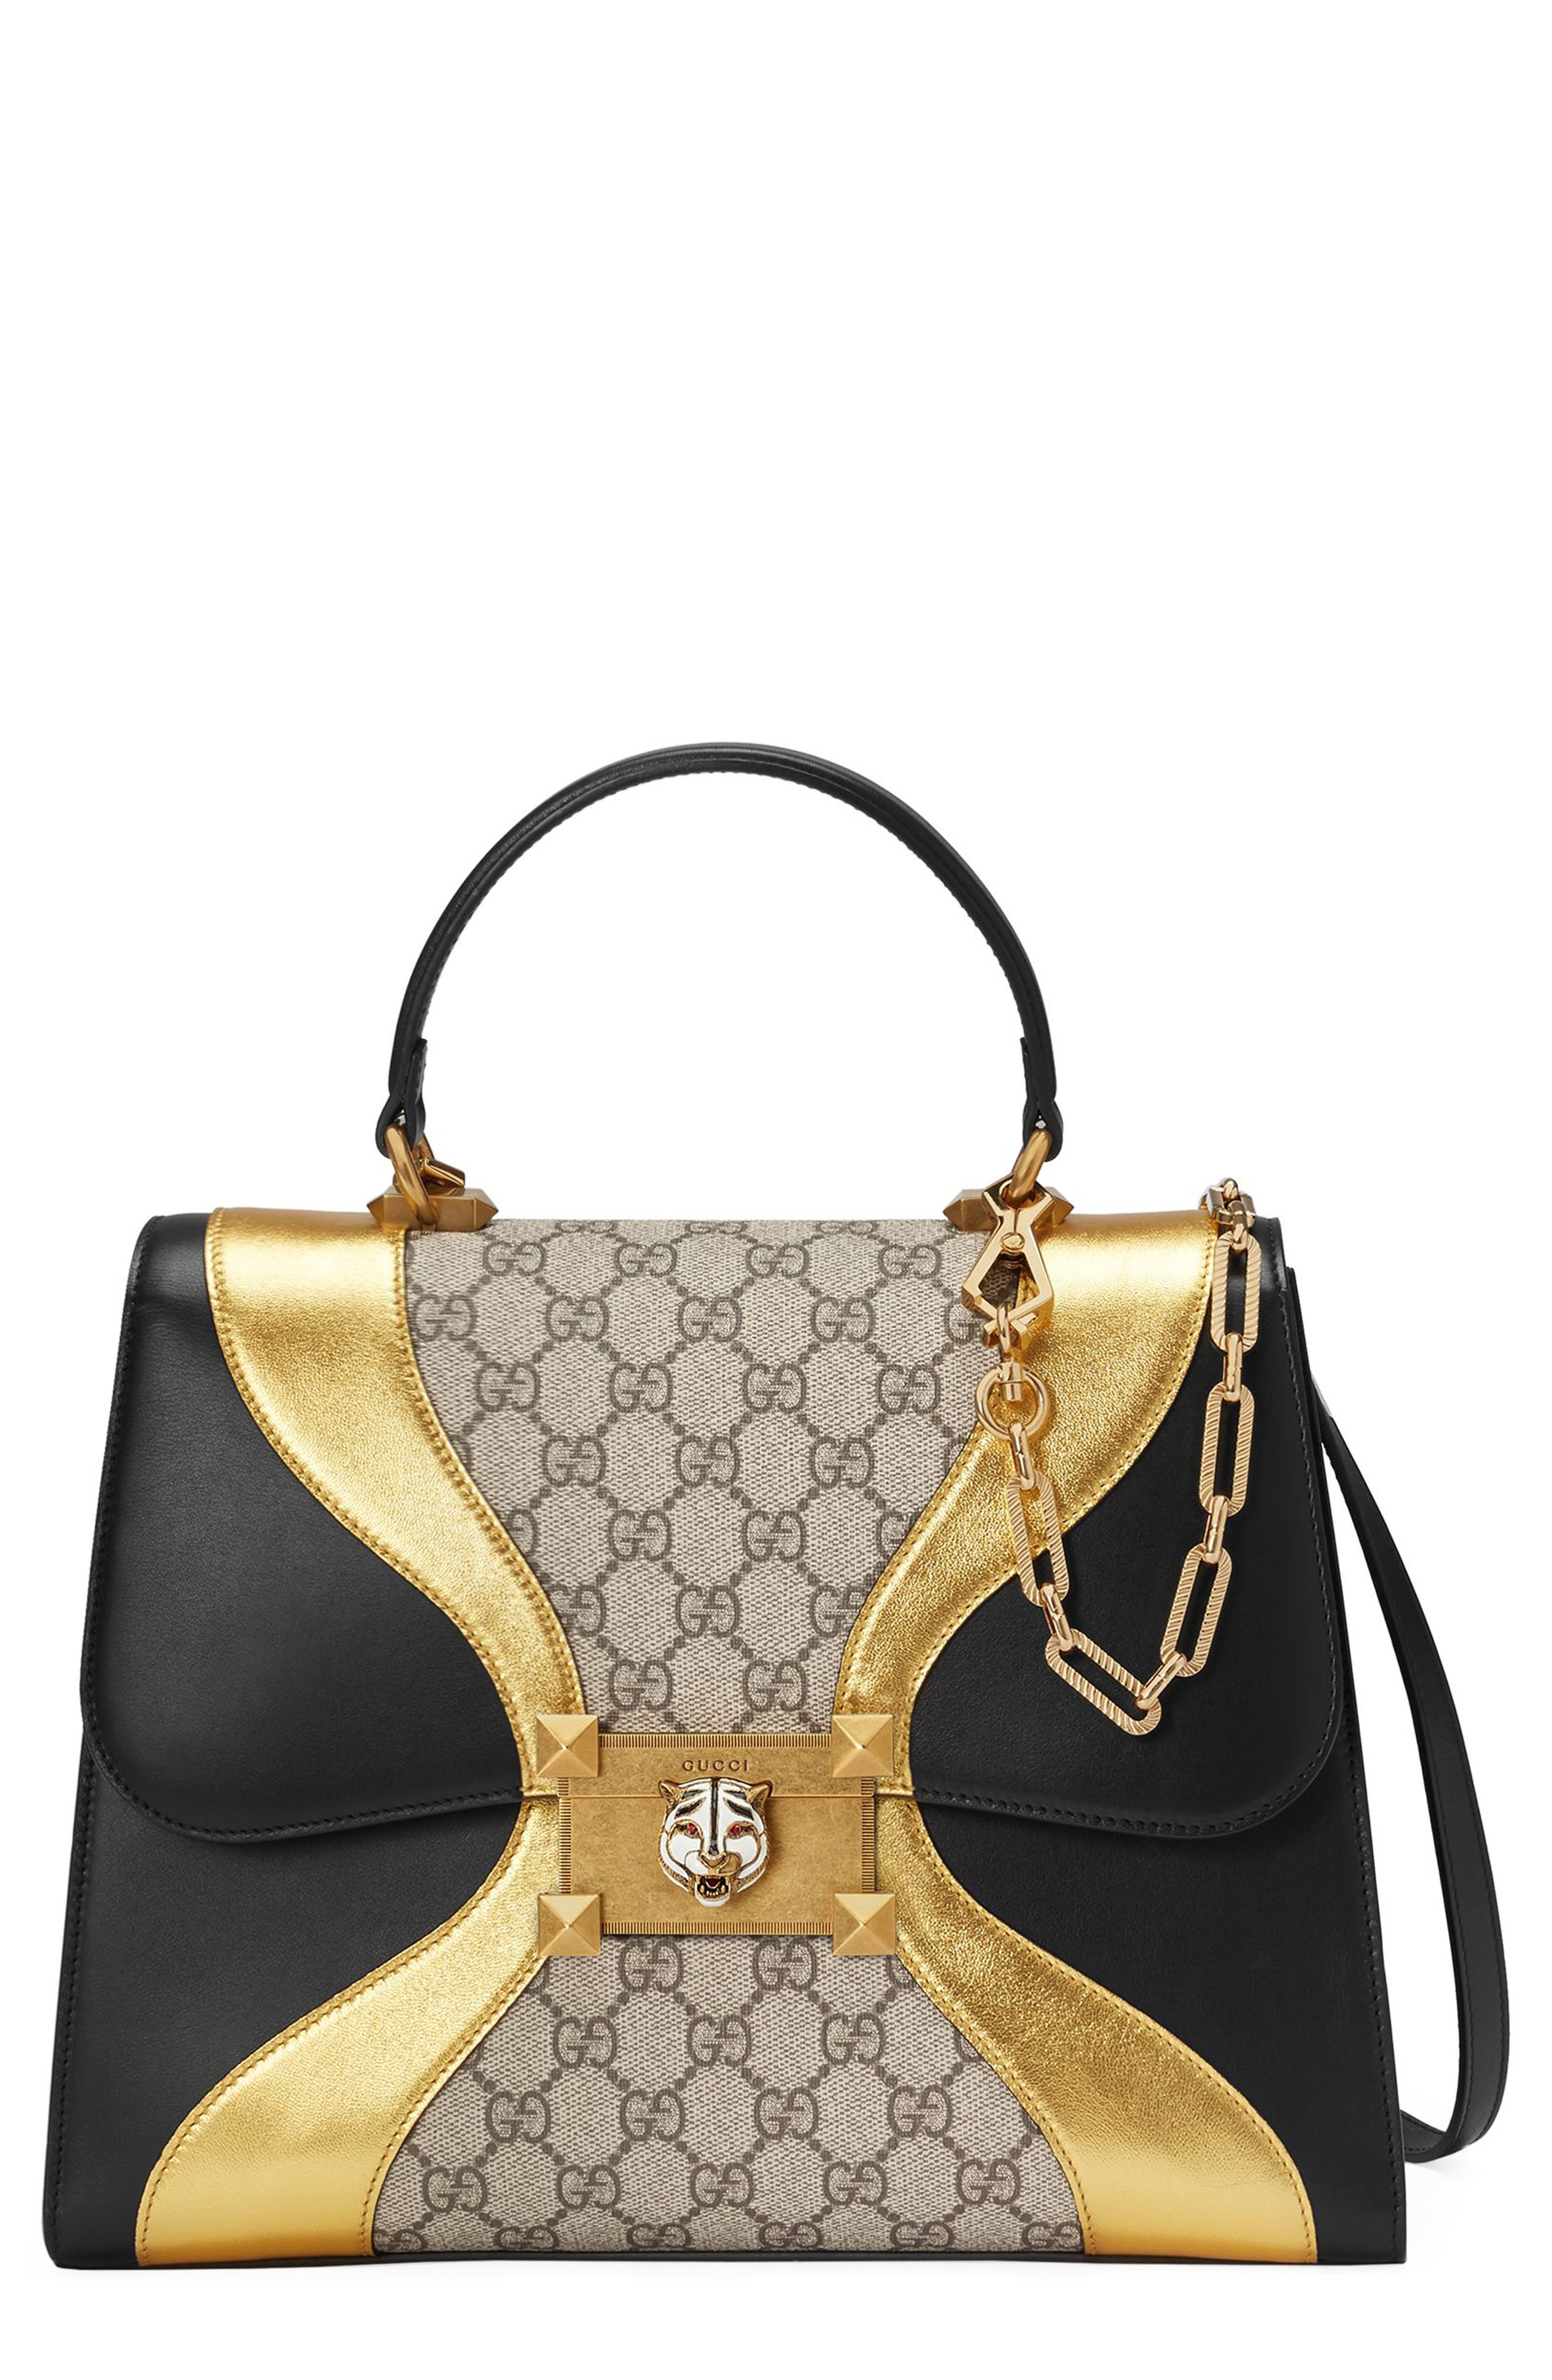 Alternate Image 1 Selected - Gucci Iside Top Handle GG Supreme & Leather Satchel